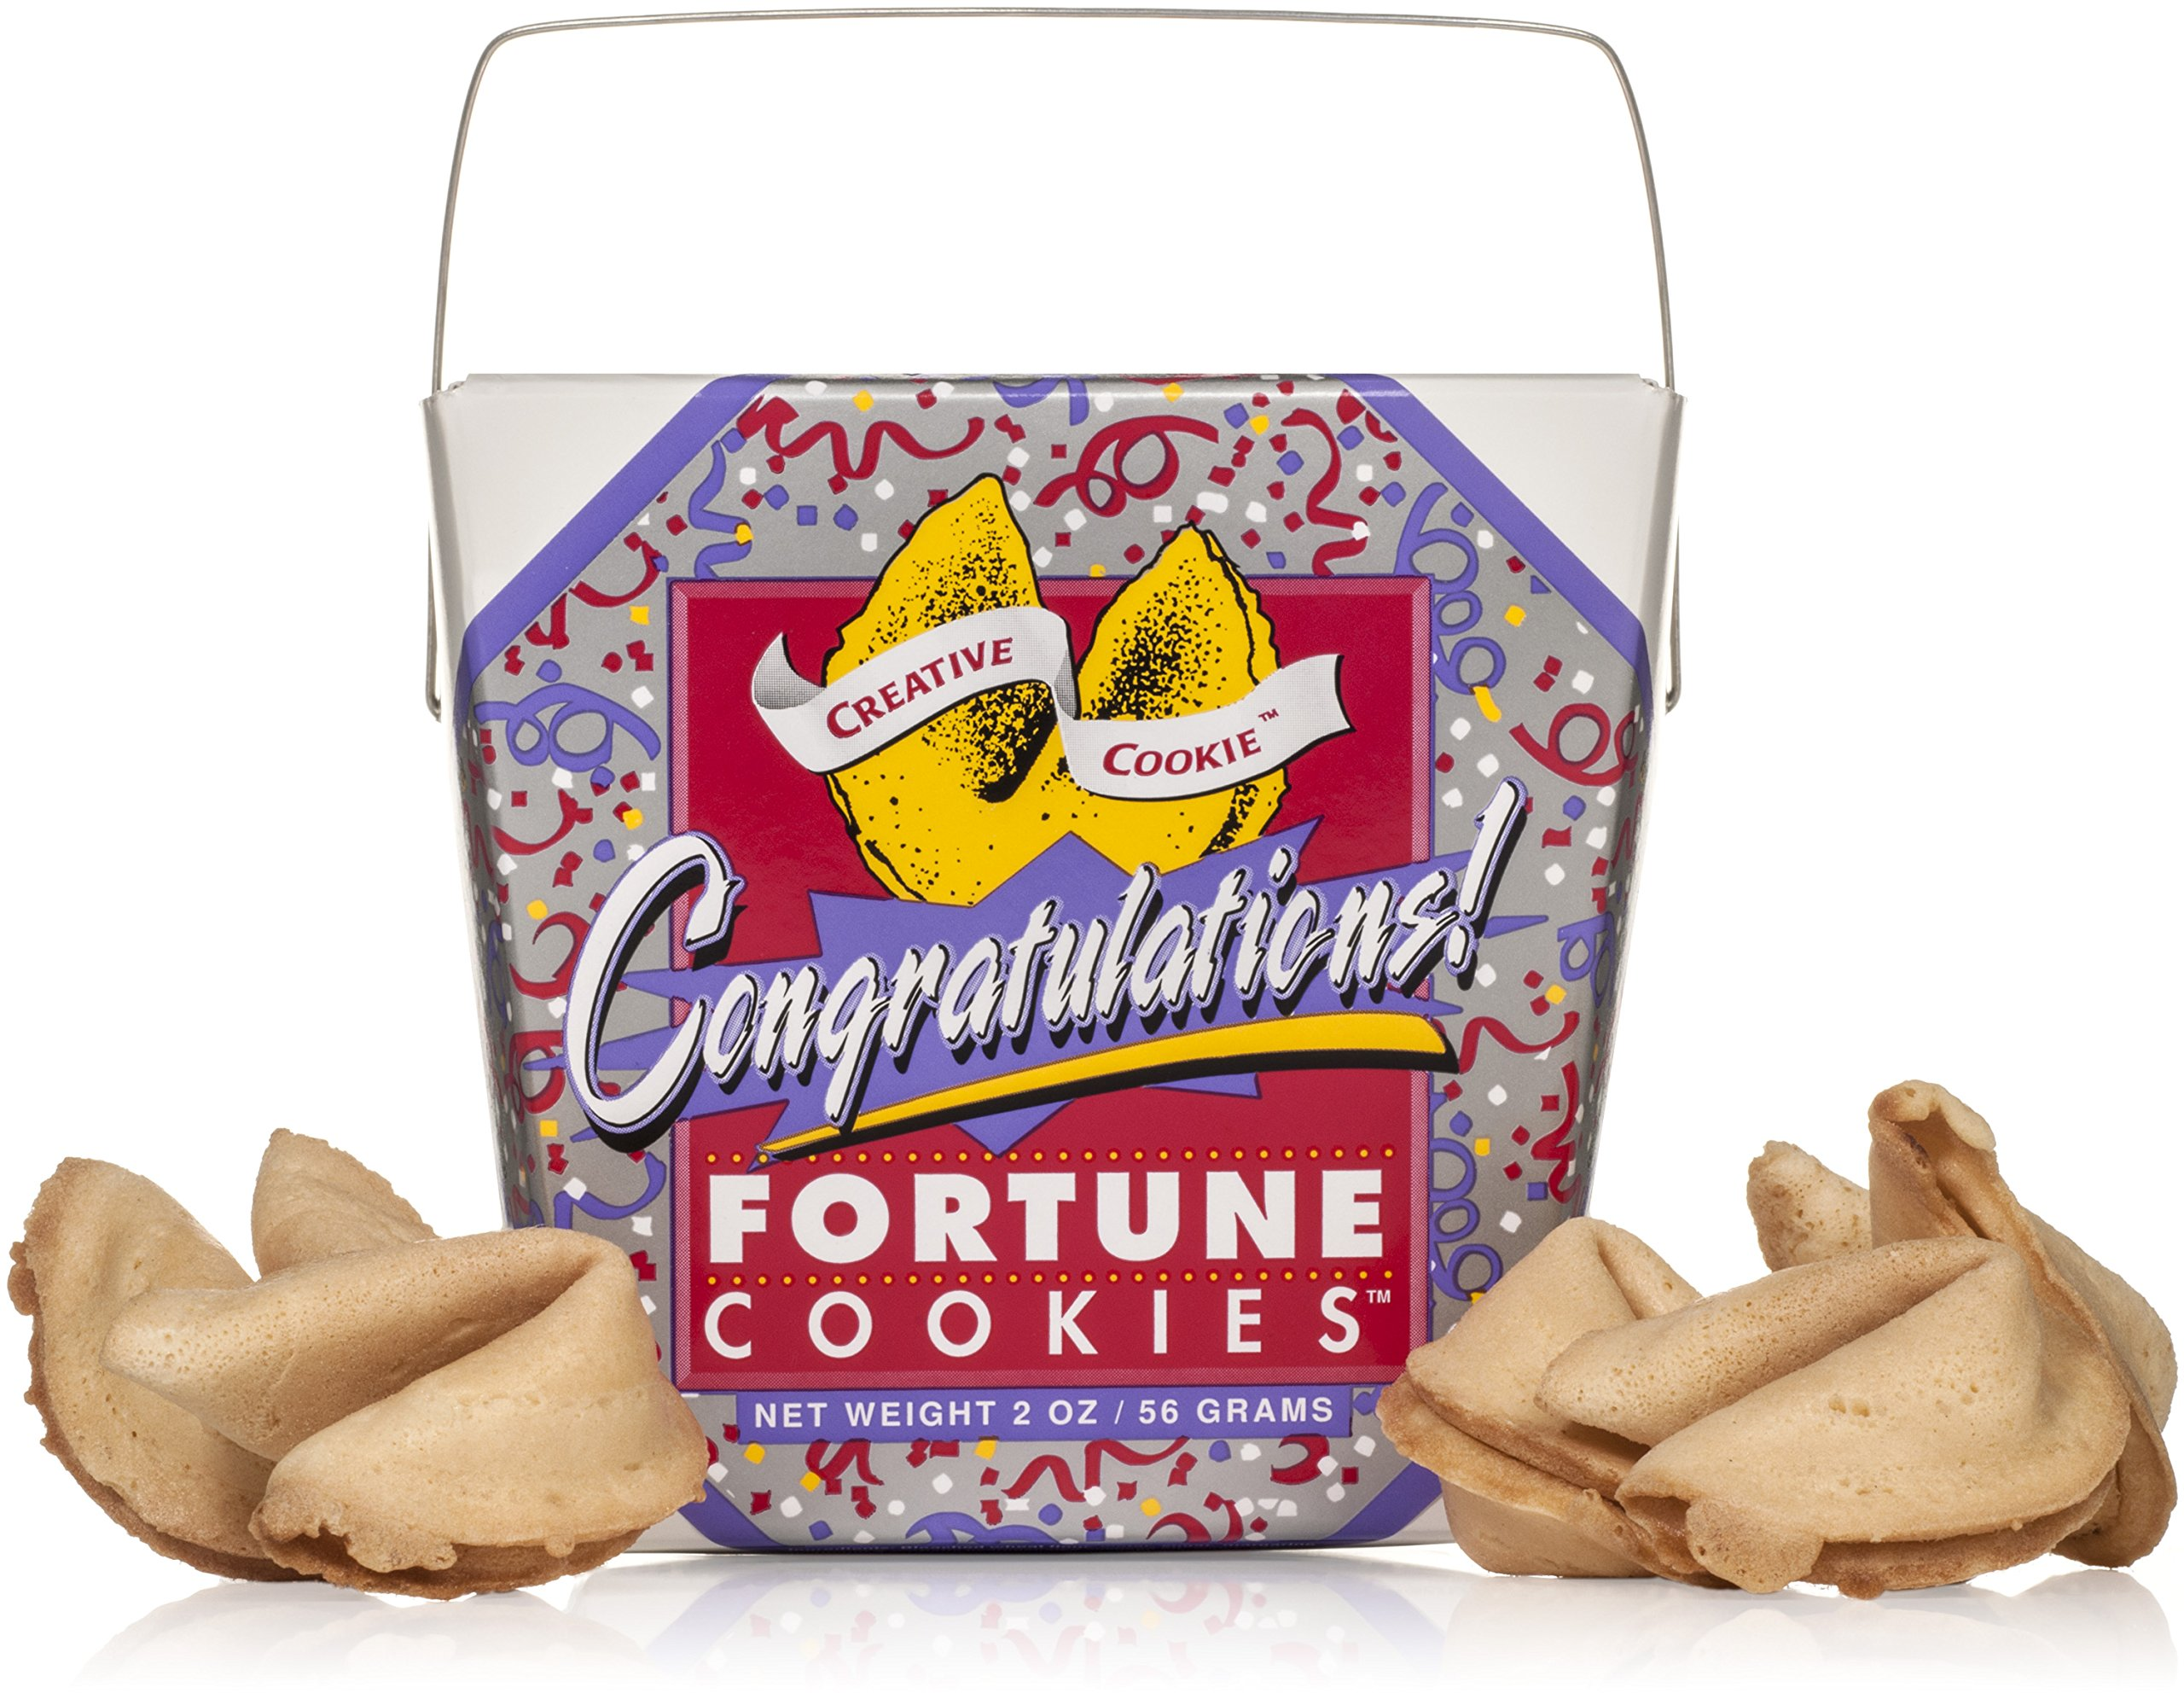 Congratulations Gifts Fortune Cookies In A Gift Box - 8 Pieces Traditional Vanilla Flavor Individually Wrapped - Kosher Certified Gourmet Gift by Creative Cookie